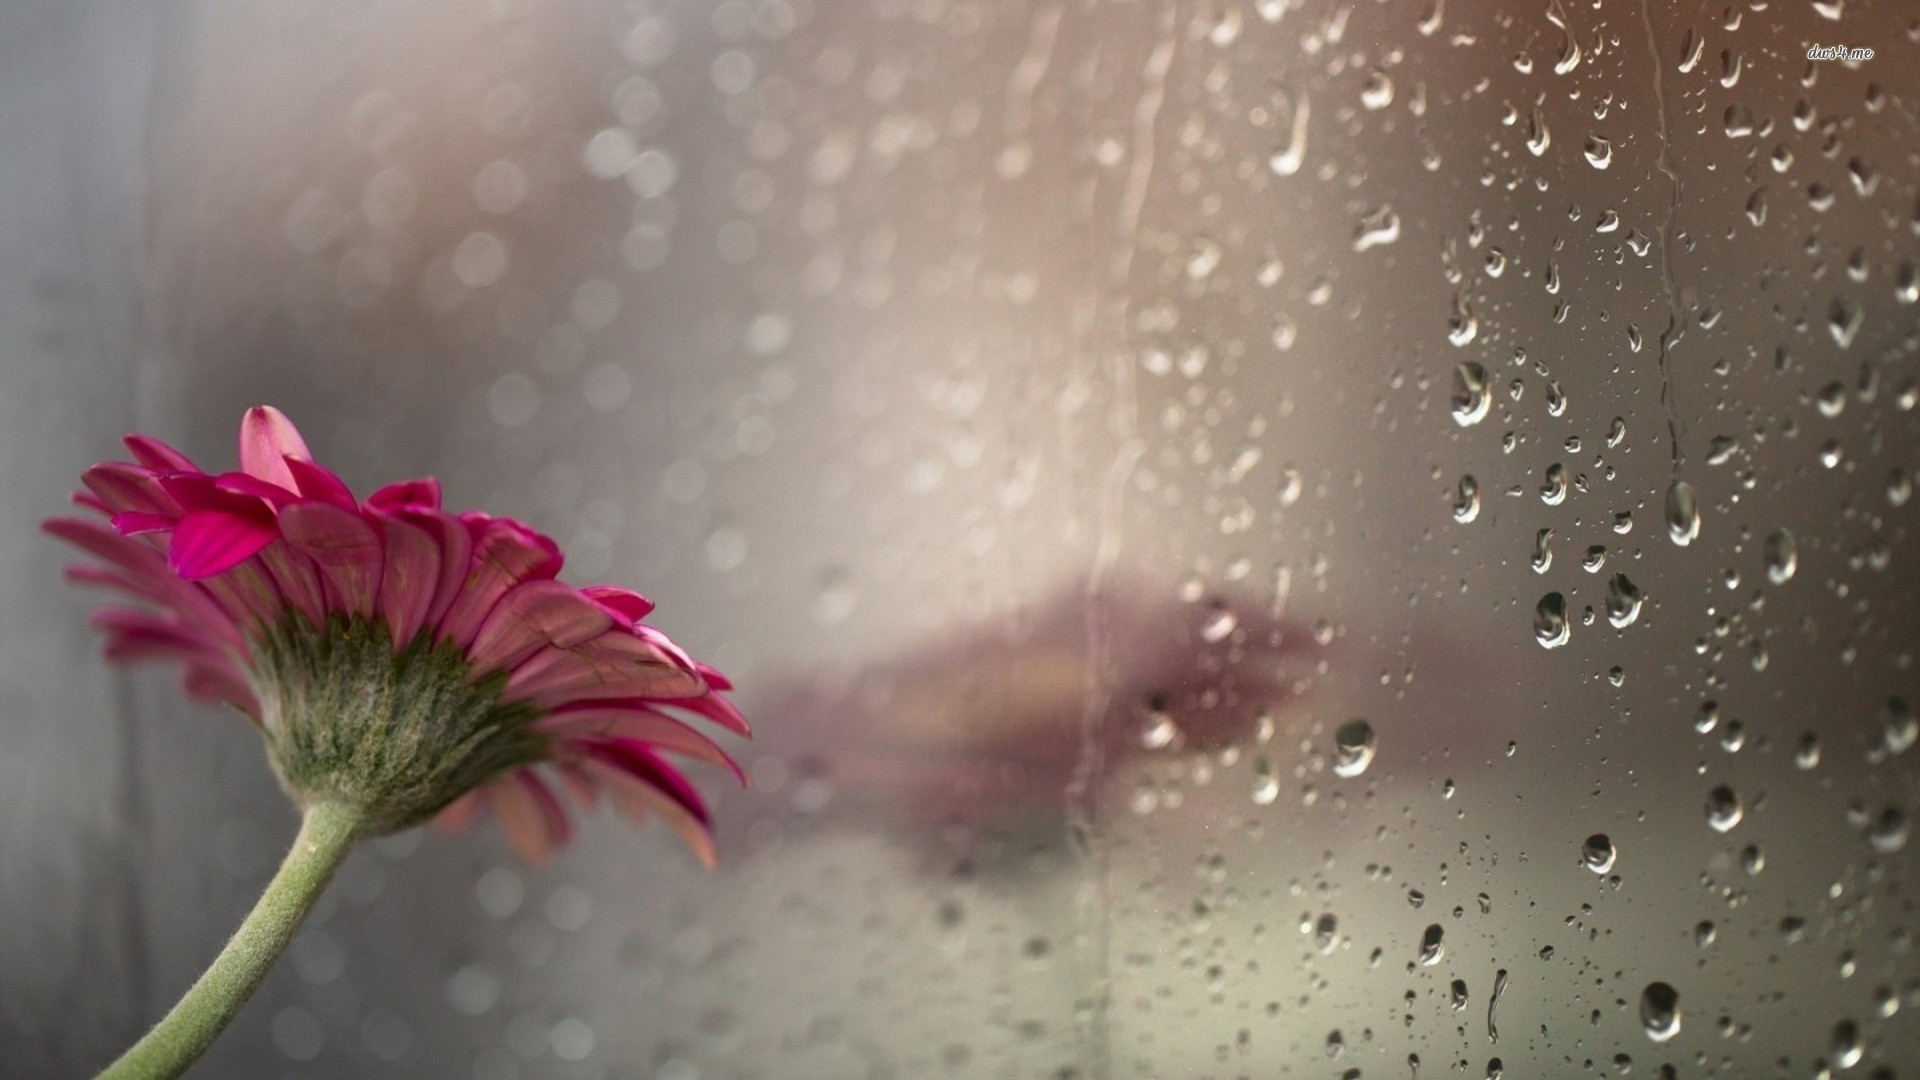 Beautiful rain drops wallpapers with quotes 52 images - Rainy hd wallpaper for pc ...